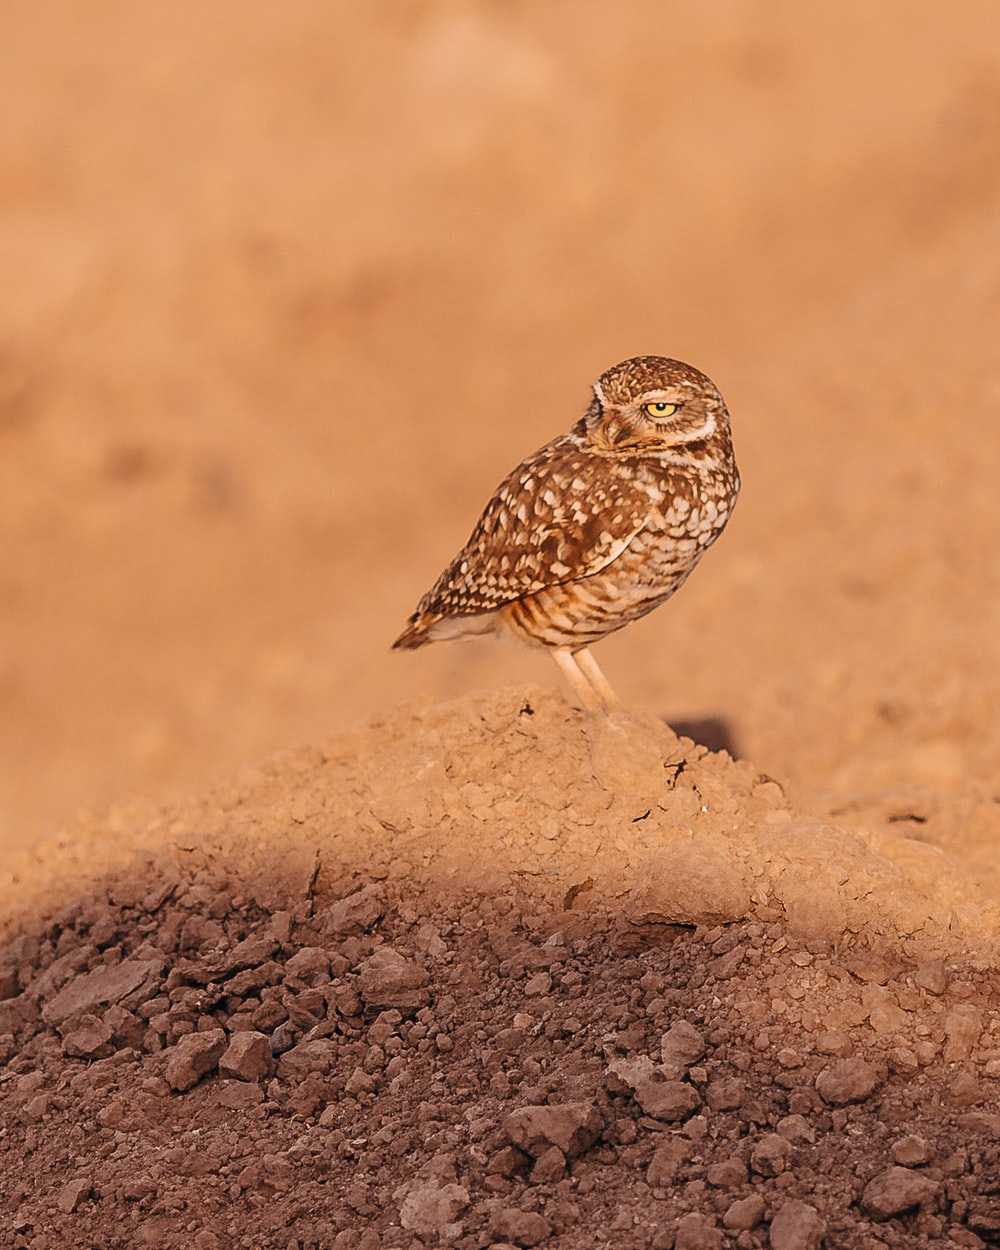 brown and white owl on brown rock during daytime